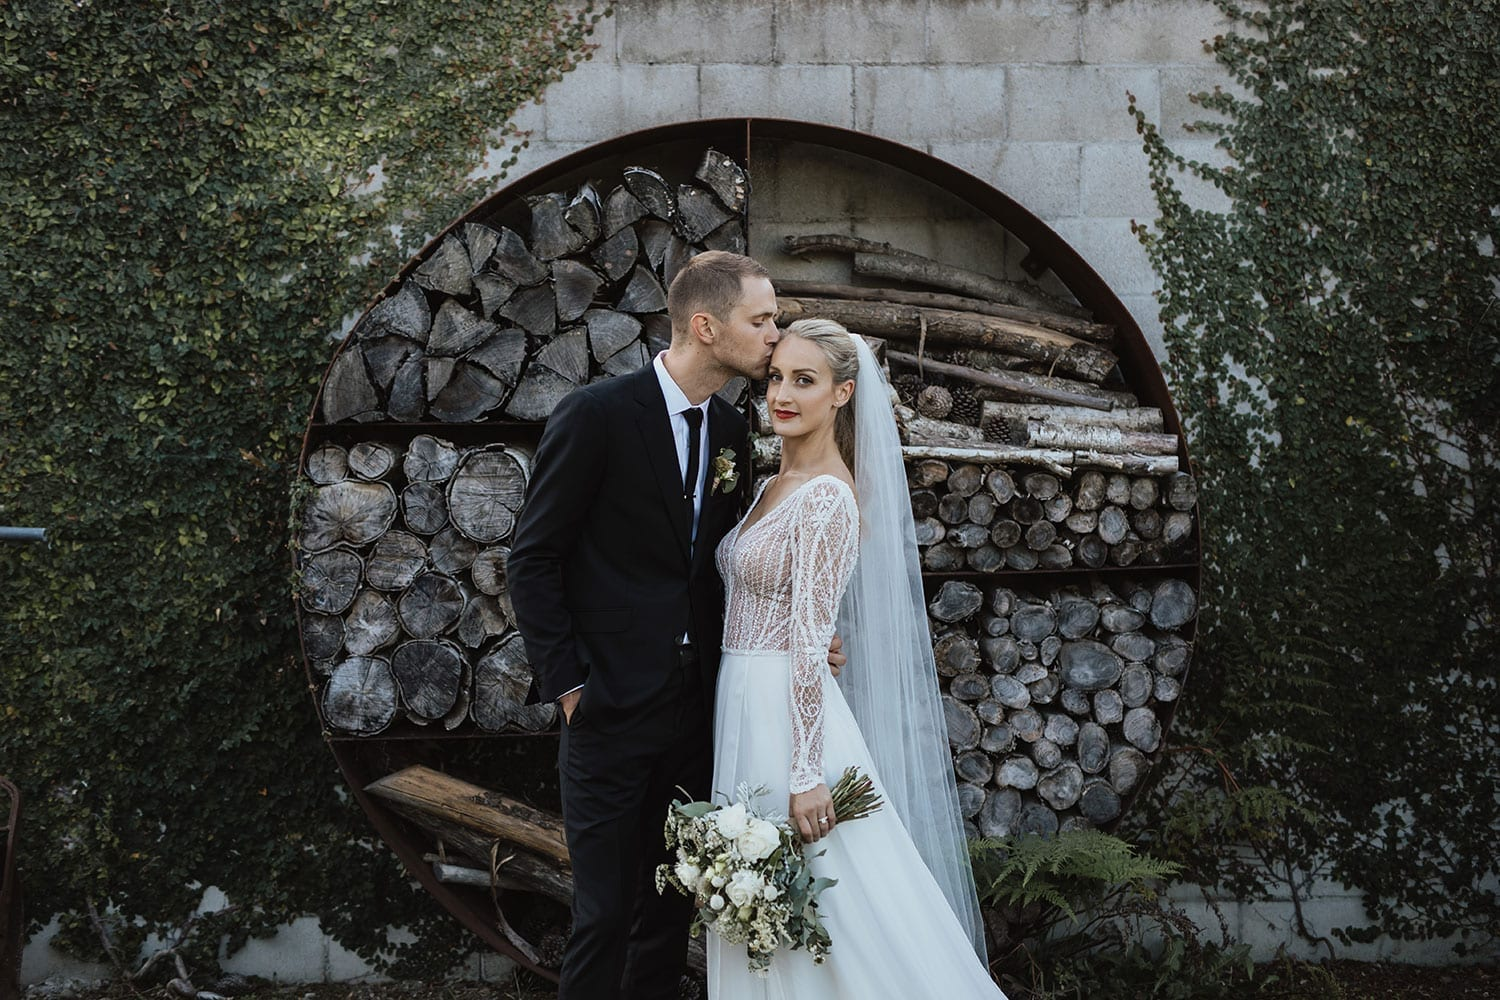 Vinka Design Features Real Weddings - Bride in custom made gown with bold lace bodice with fitted, long, beaded lace sleeves and floating skirt. With groom kissing head